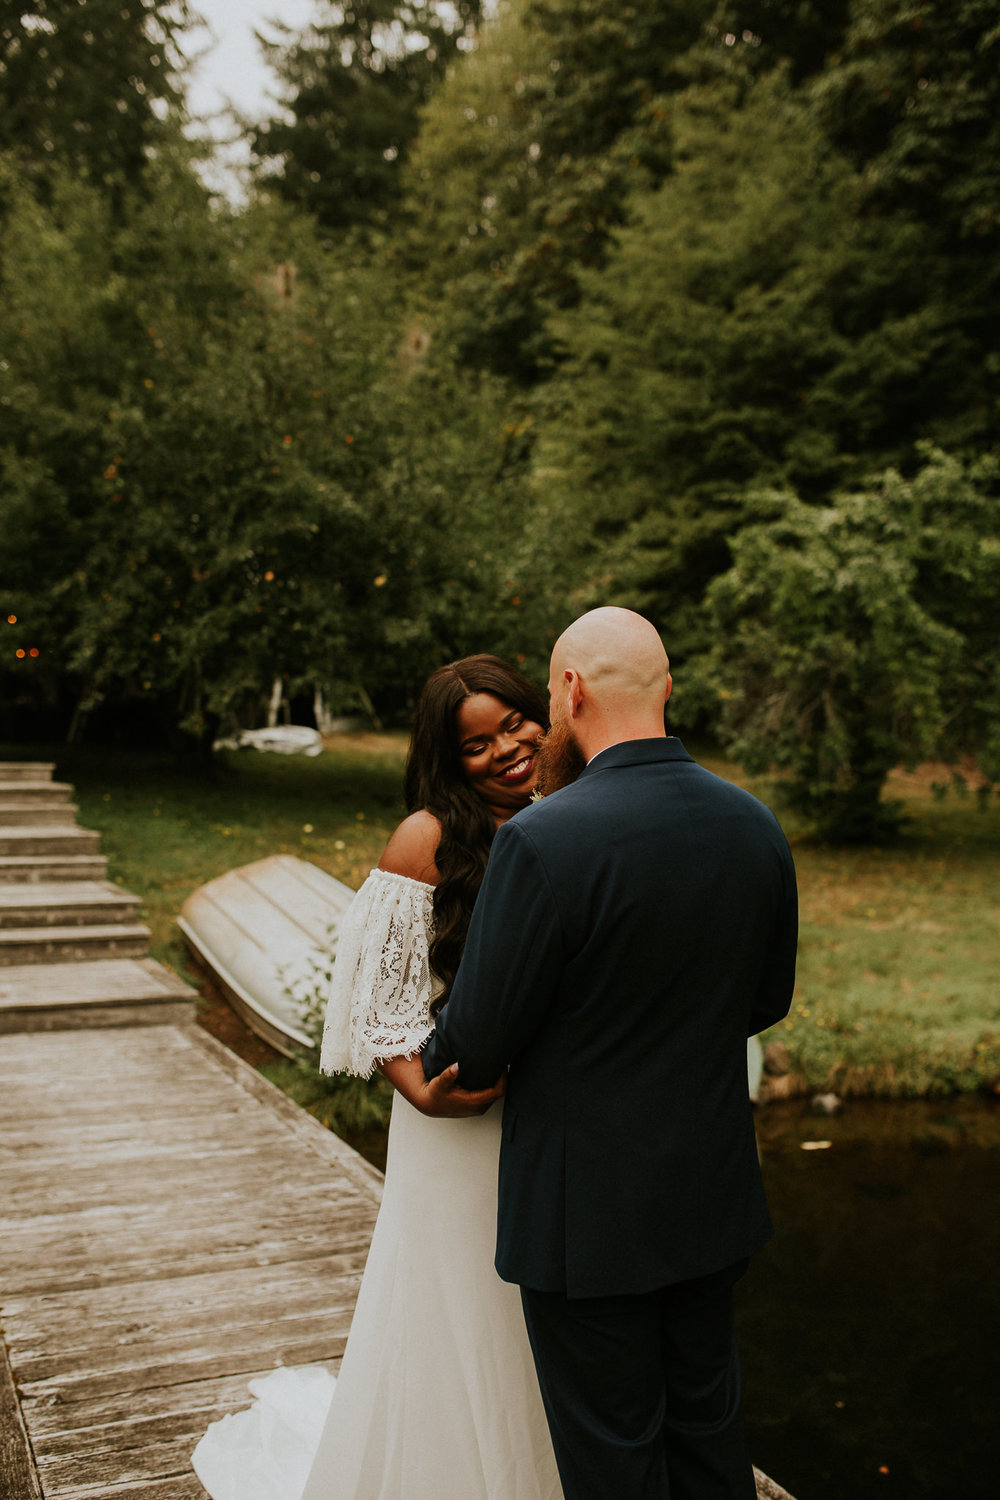 Lakeside-elopement-teasers-10.jpg